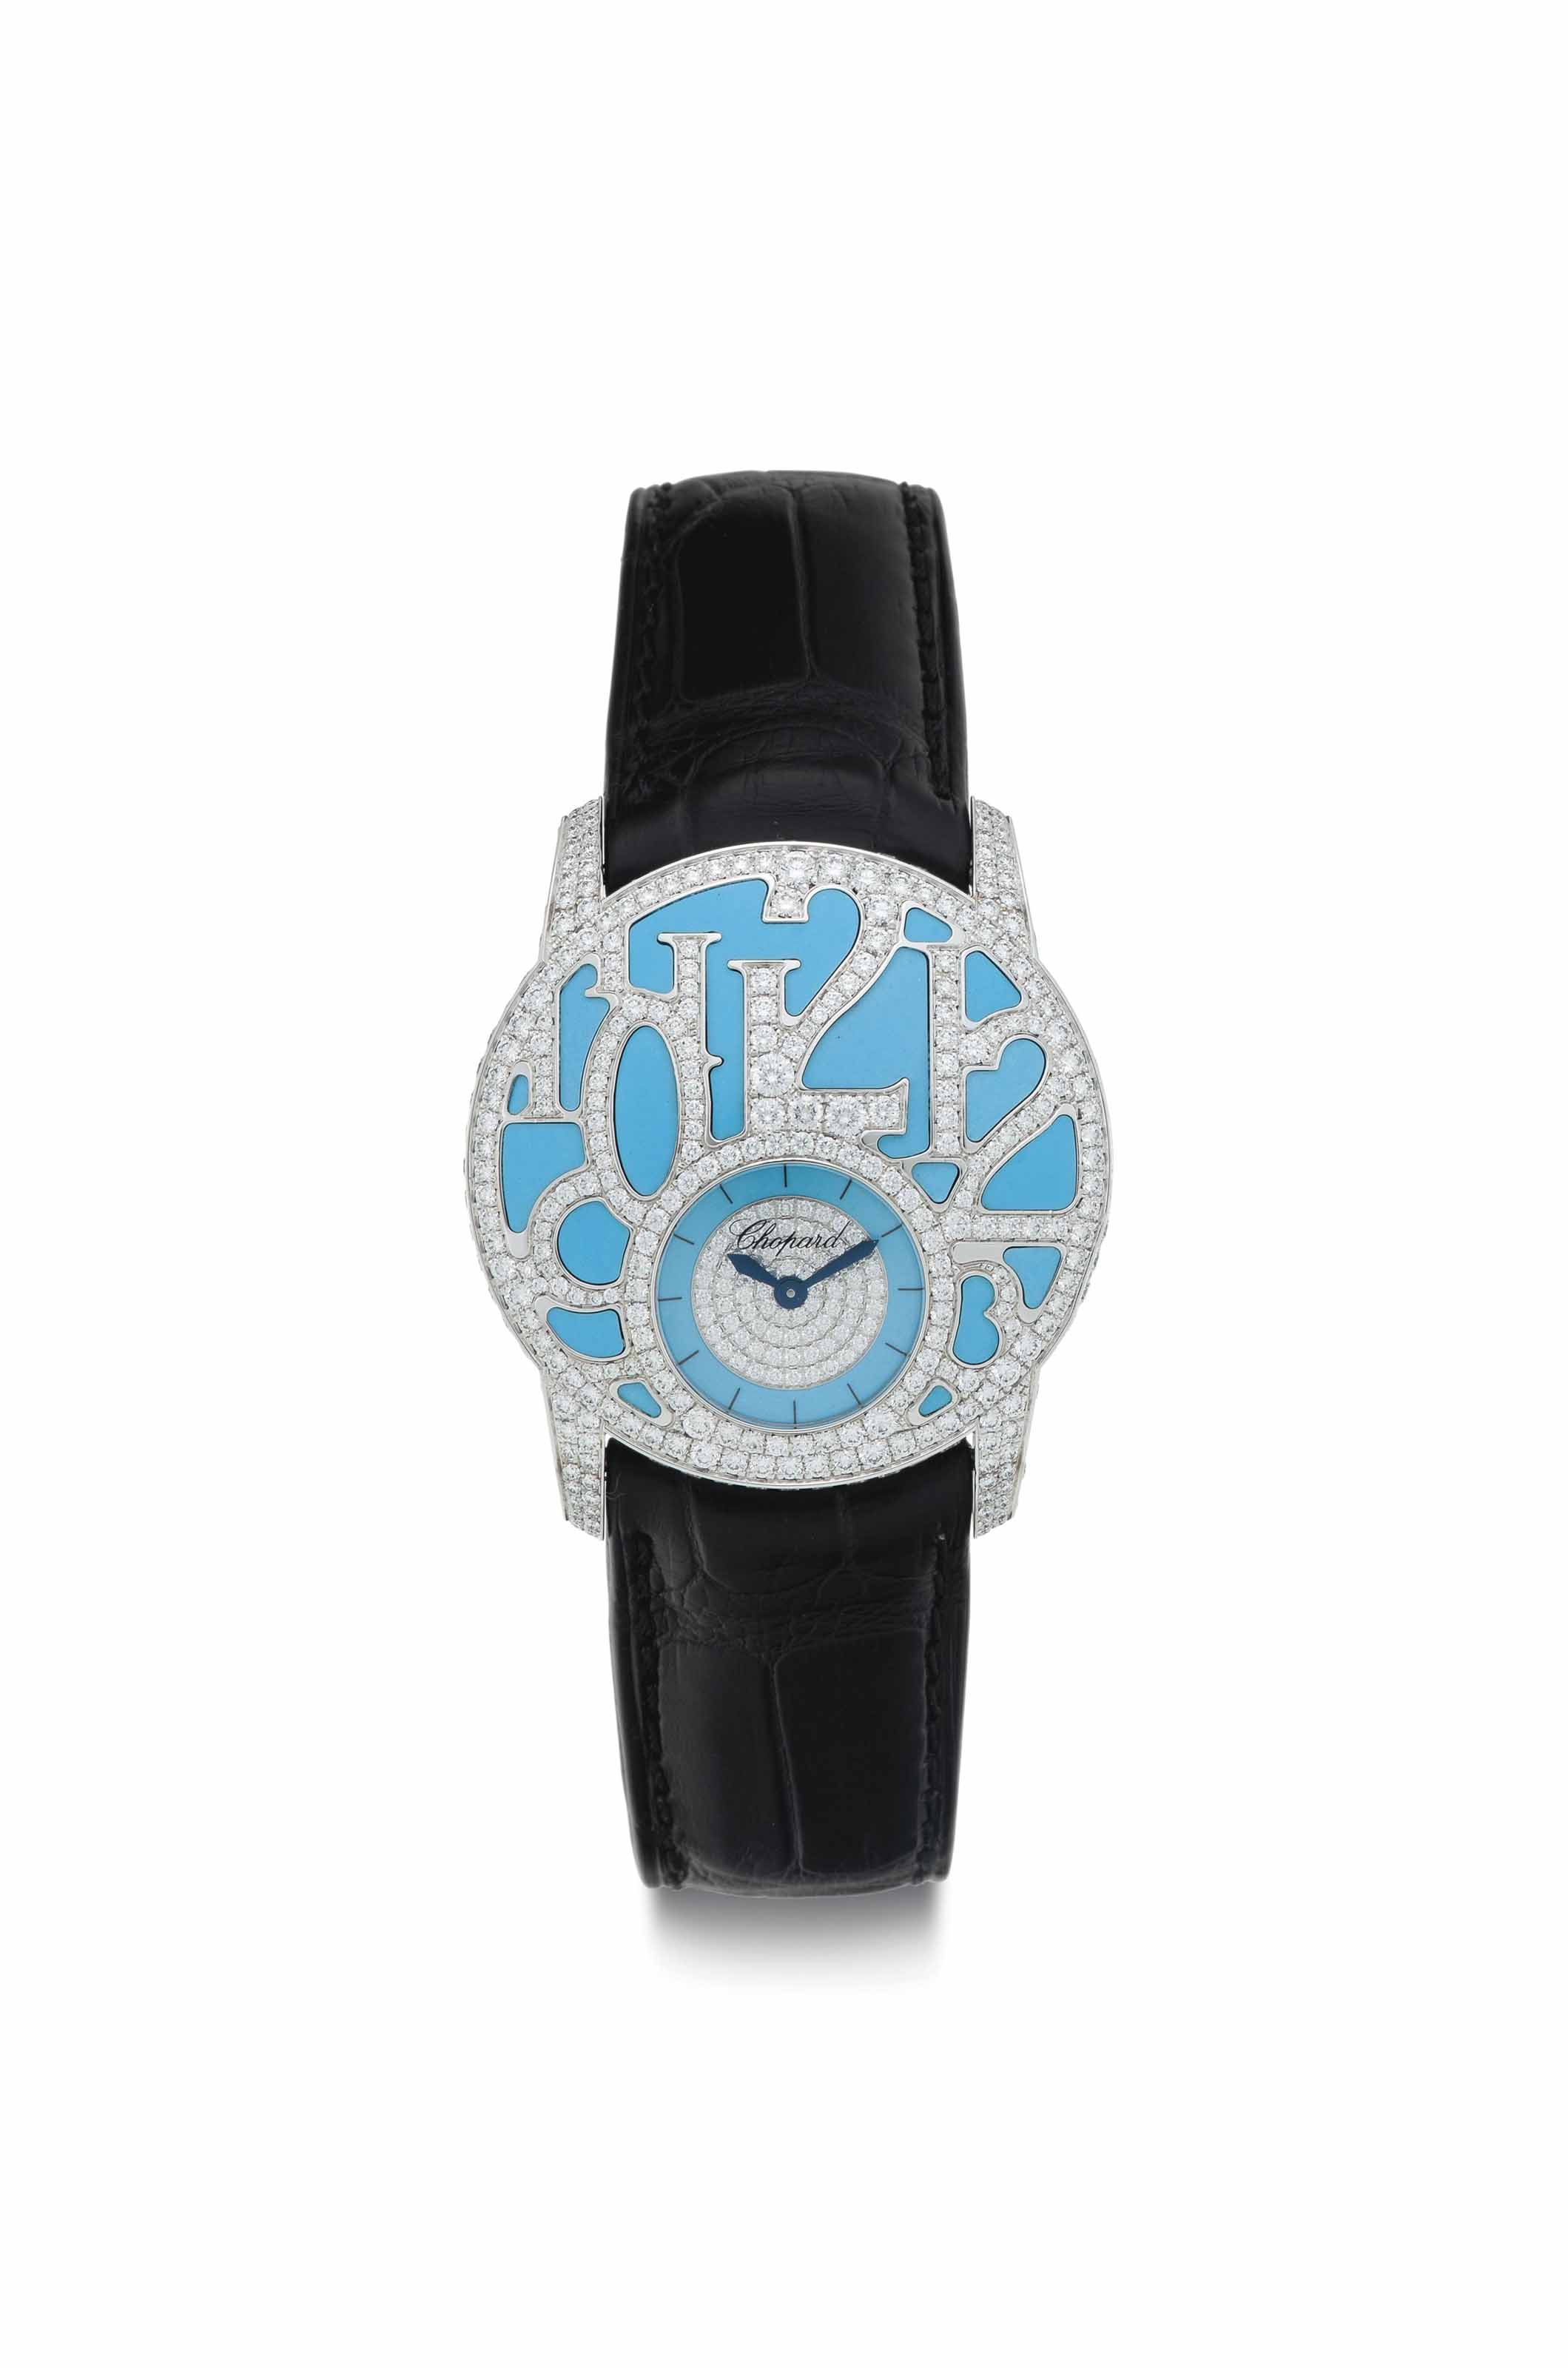 Chopard. A Lady's Fine 18k White Gold and Diamond-Set Wristwatch with Turquoise Dial